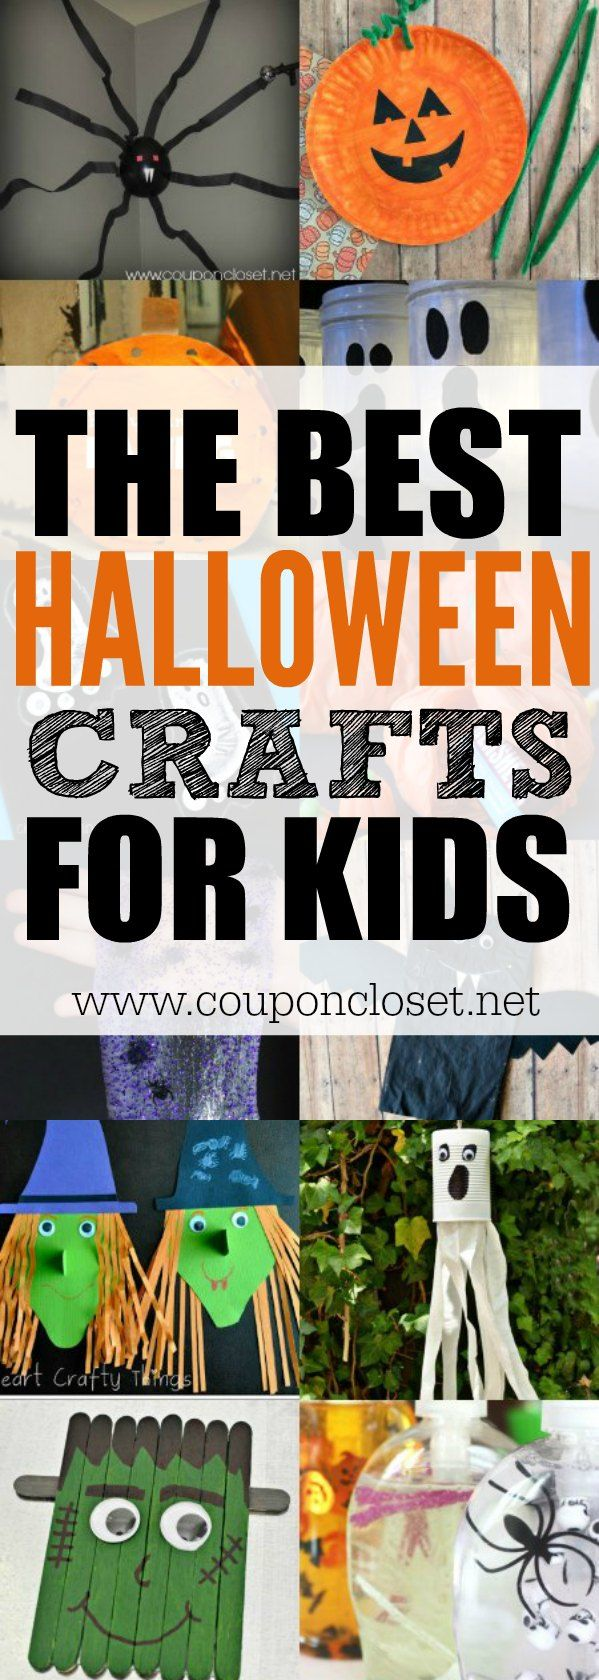 try some of these easy halloween crafts for kids frugal halloween crafts for kids are - Kids At Halloween